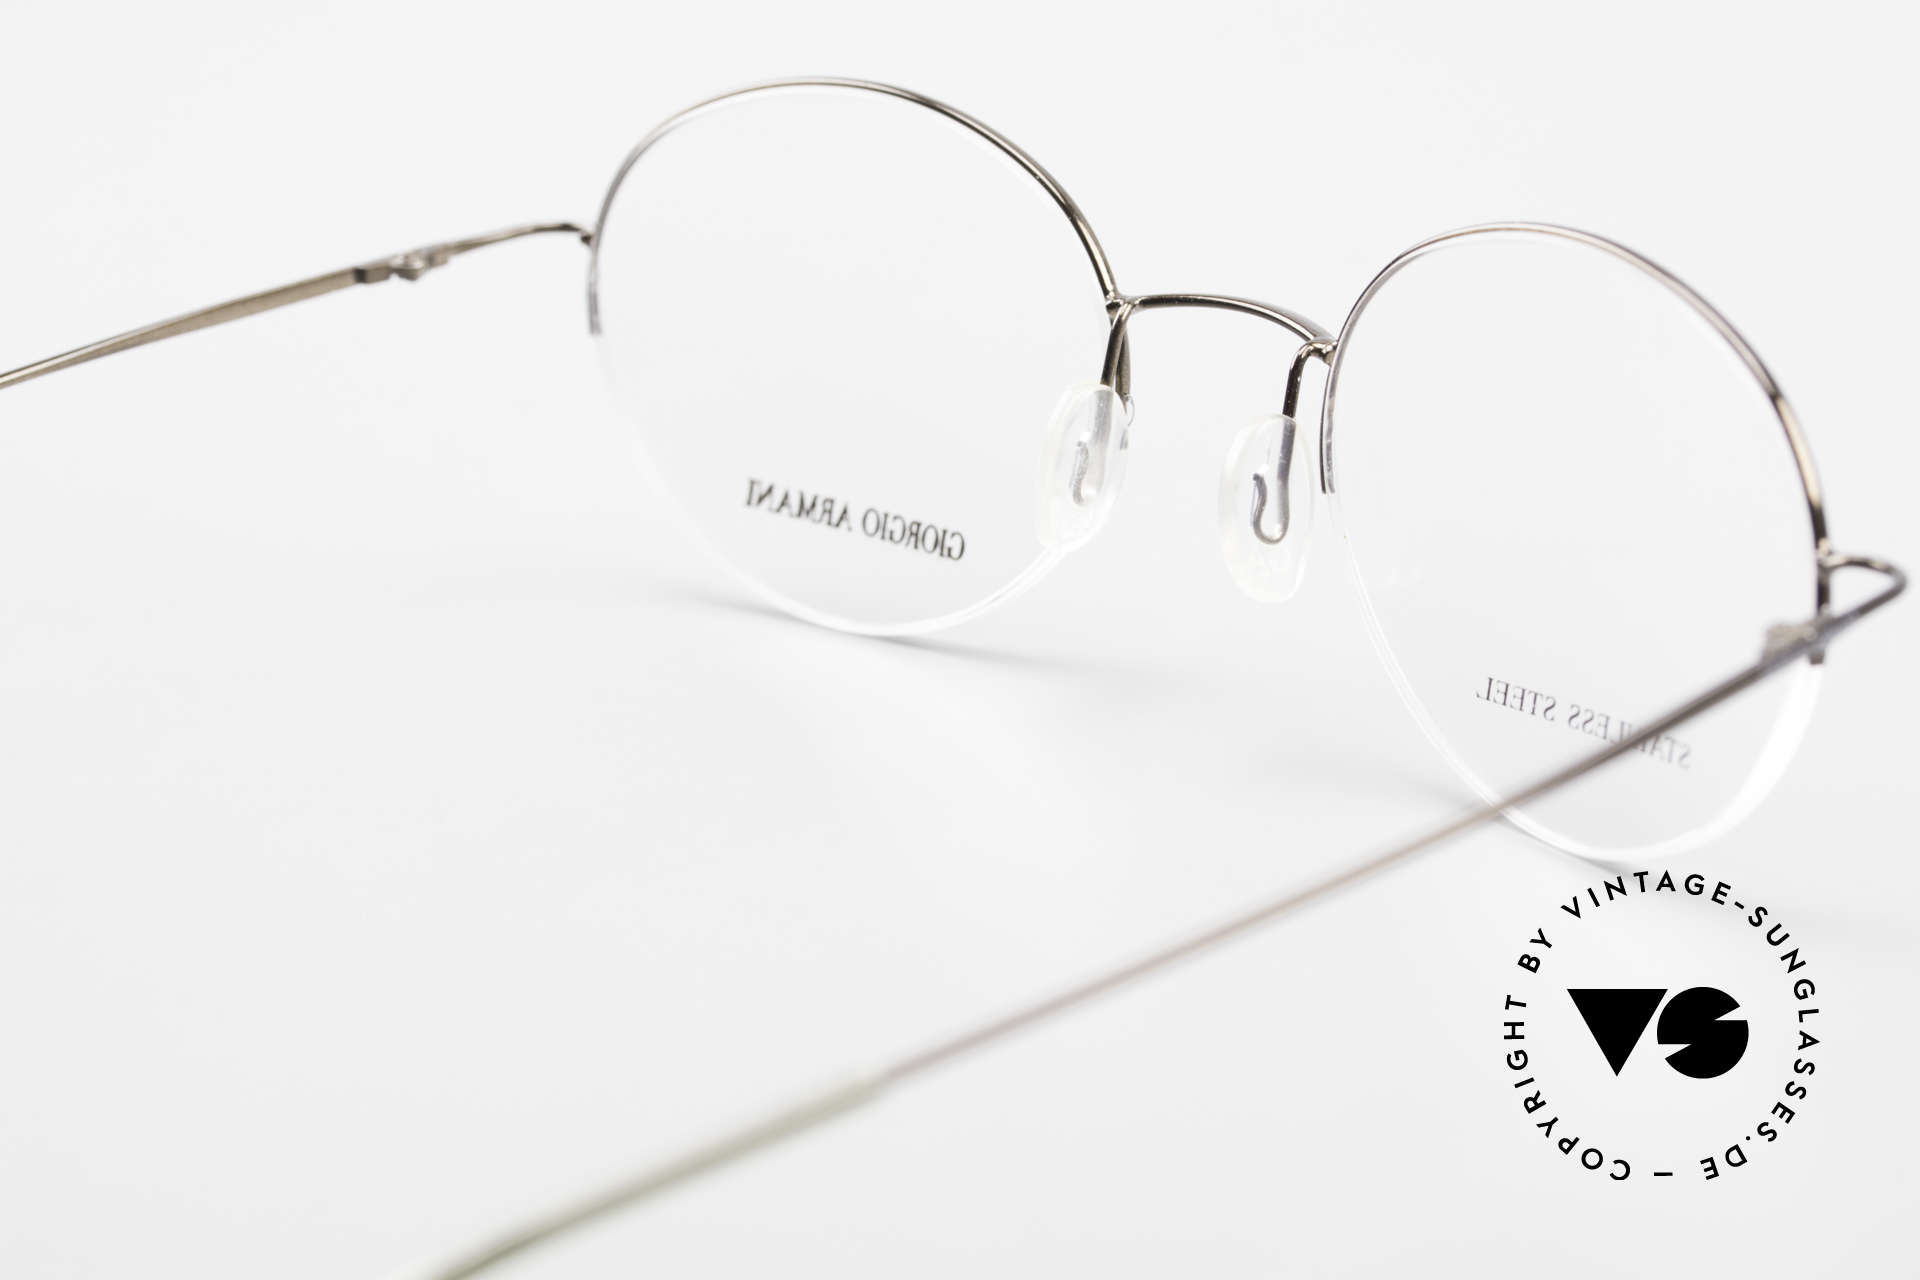 Giorgio Armani 27N Small Round Eyeglasses Nylor, semi rimless = lenses are fixed with a Nylor thread, Made for Men and Women